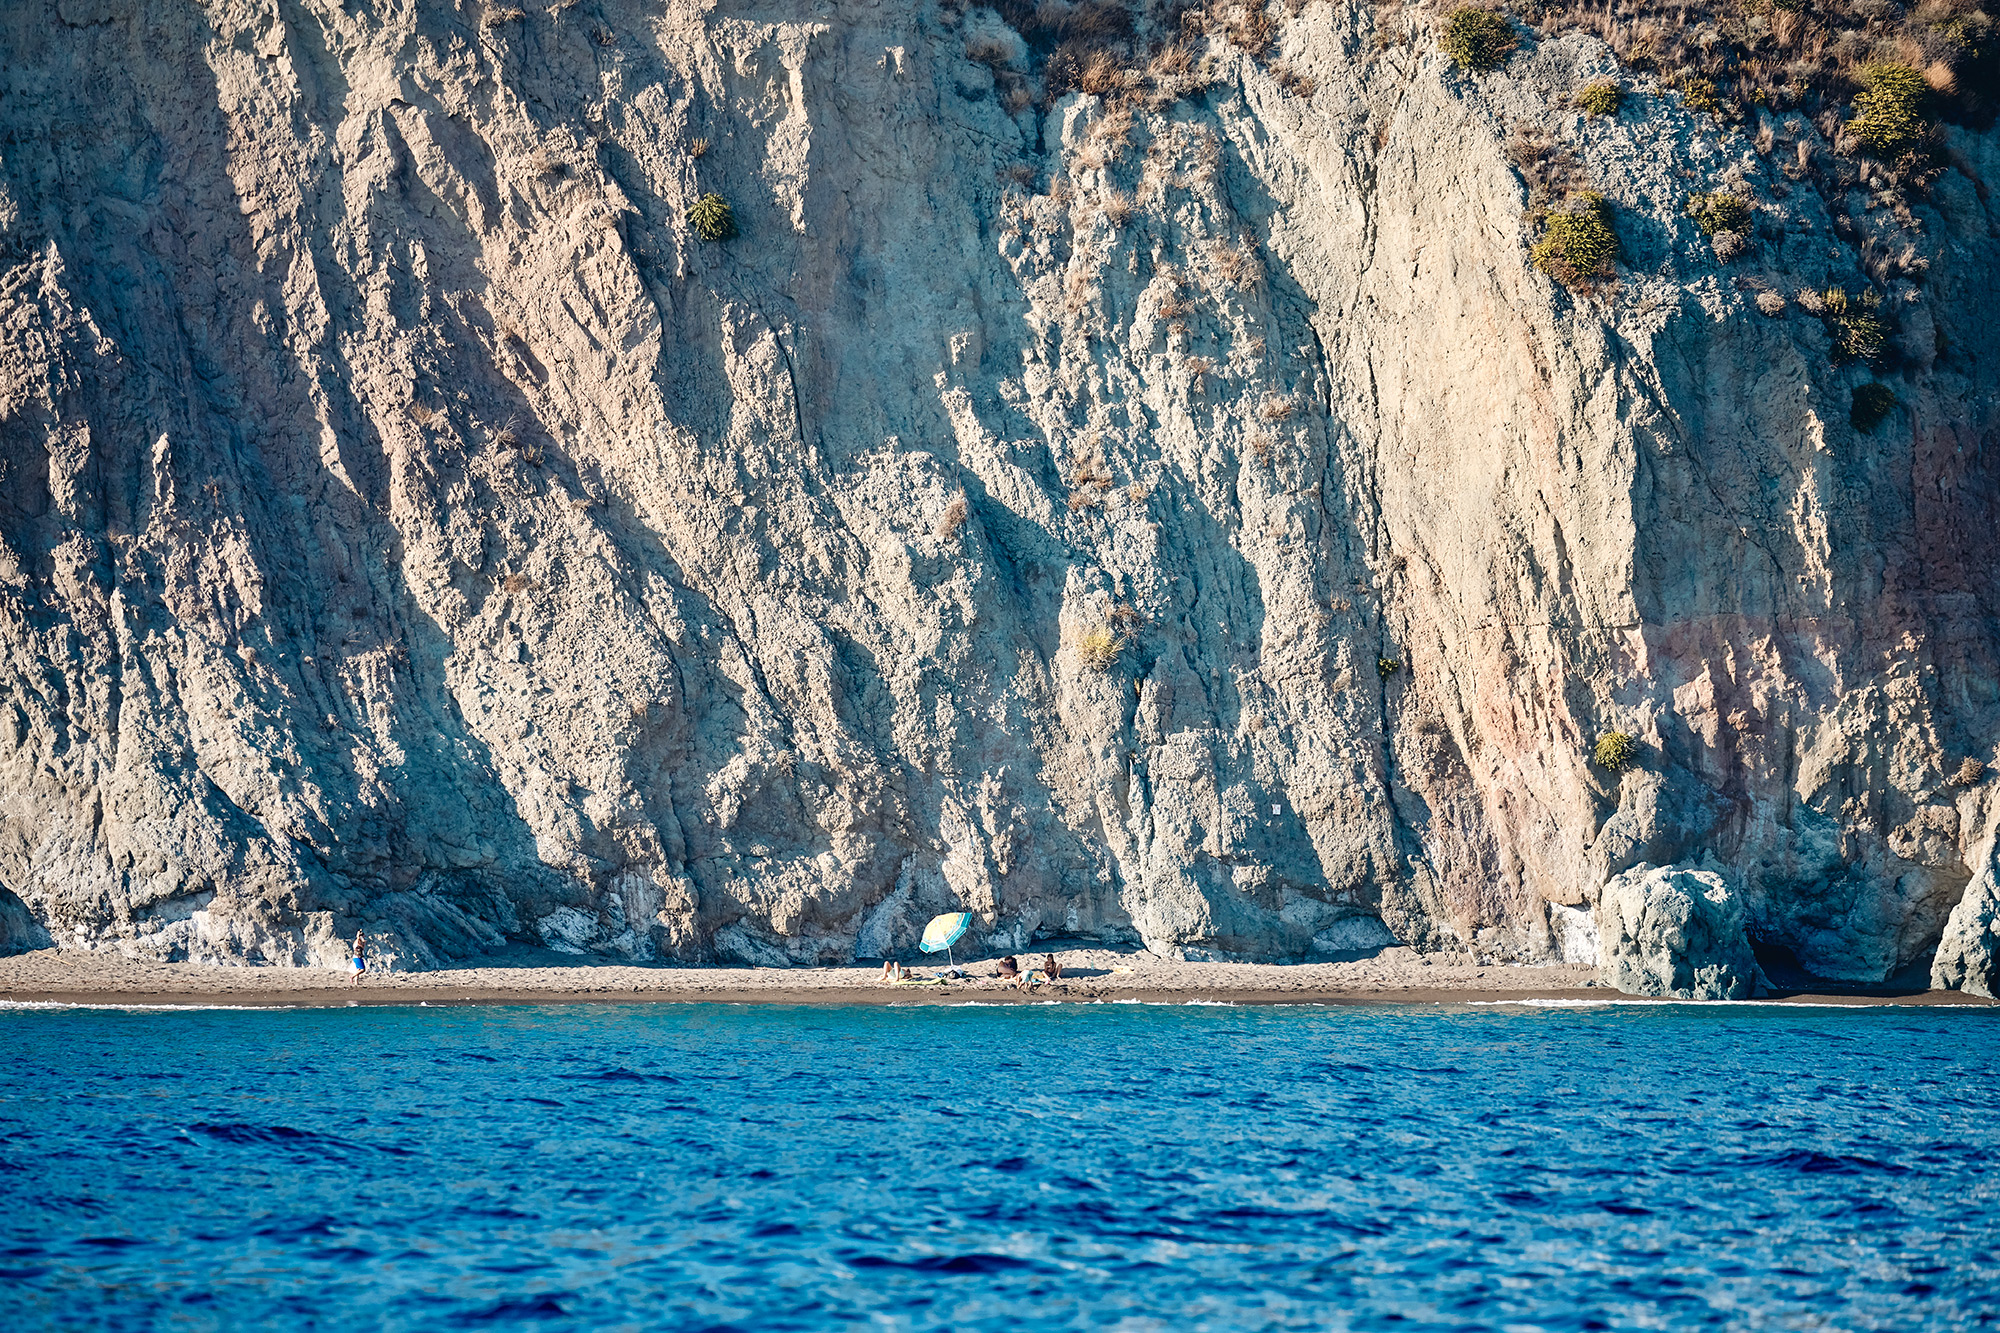 Getting away from the beach clubs, Ischia